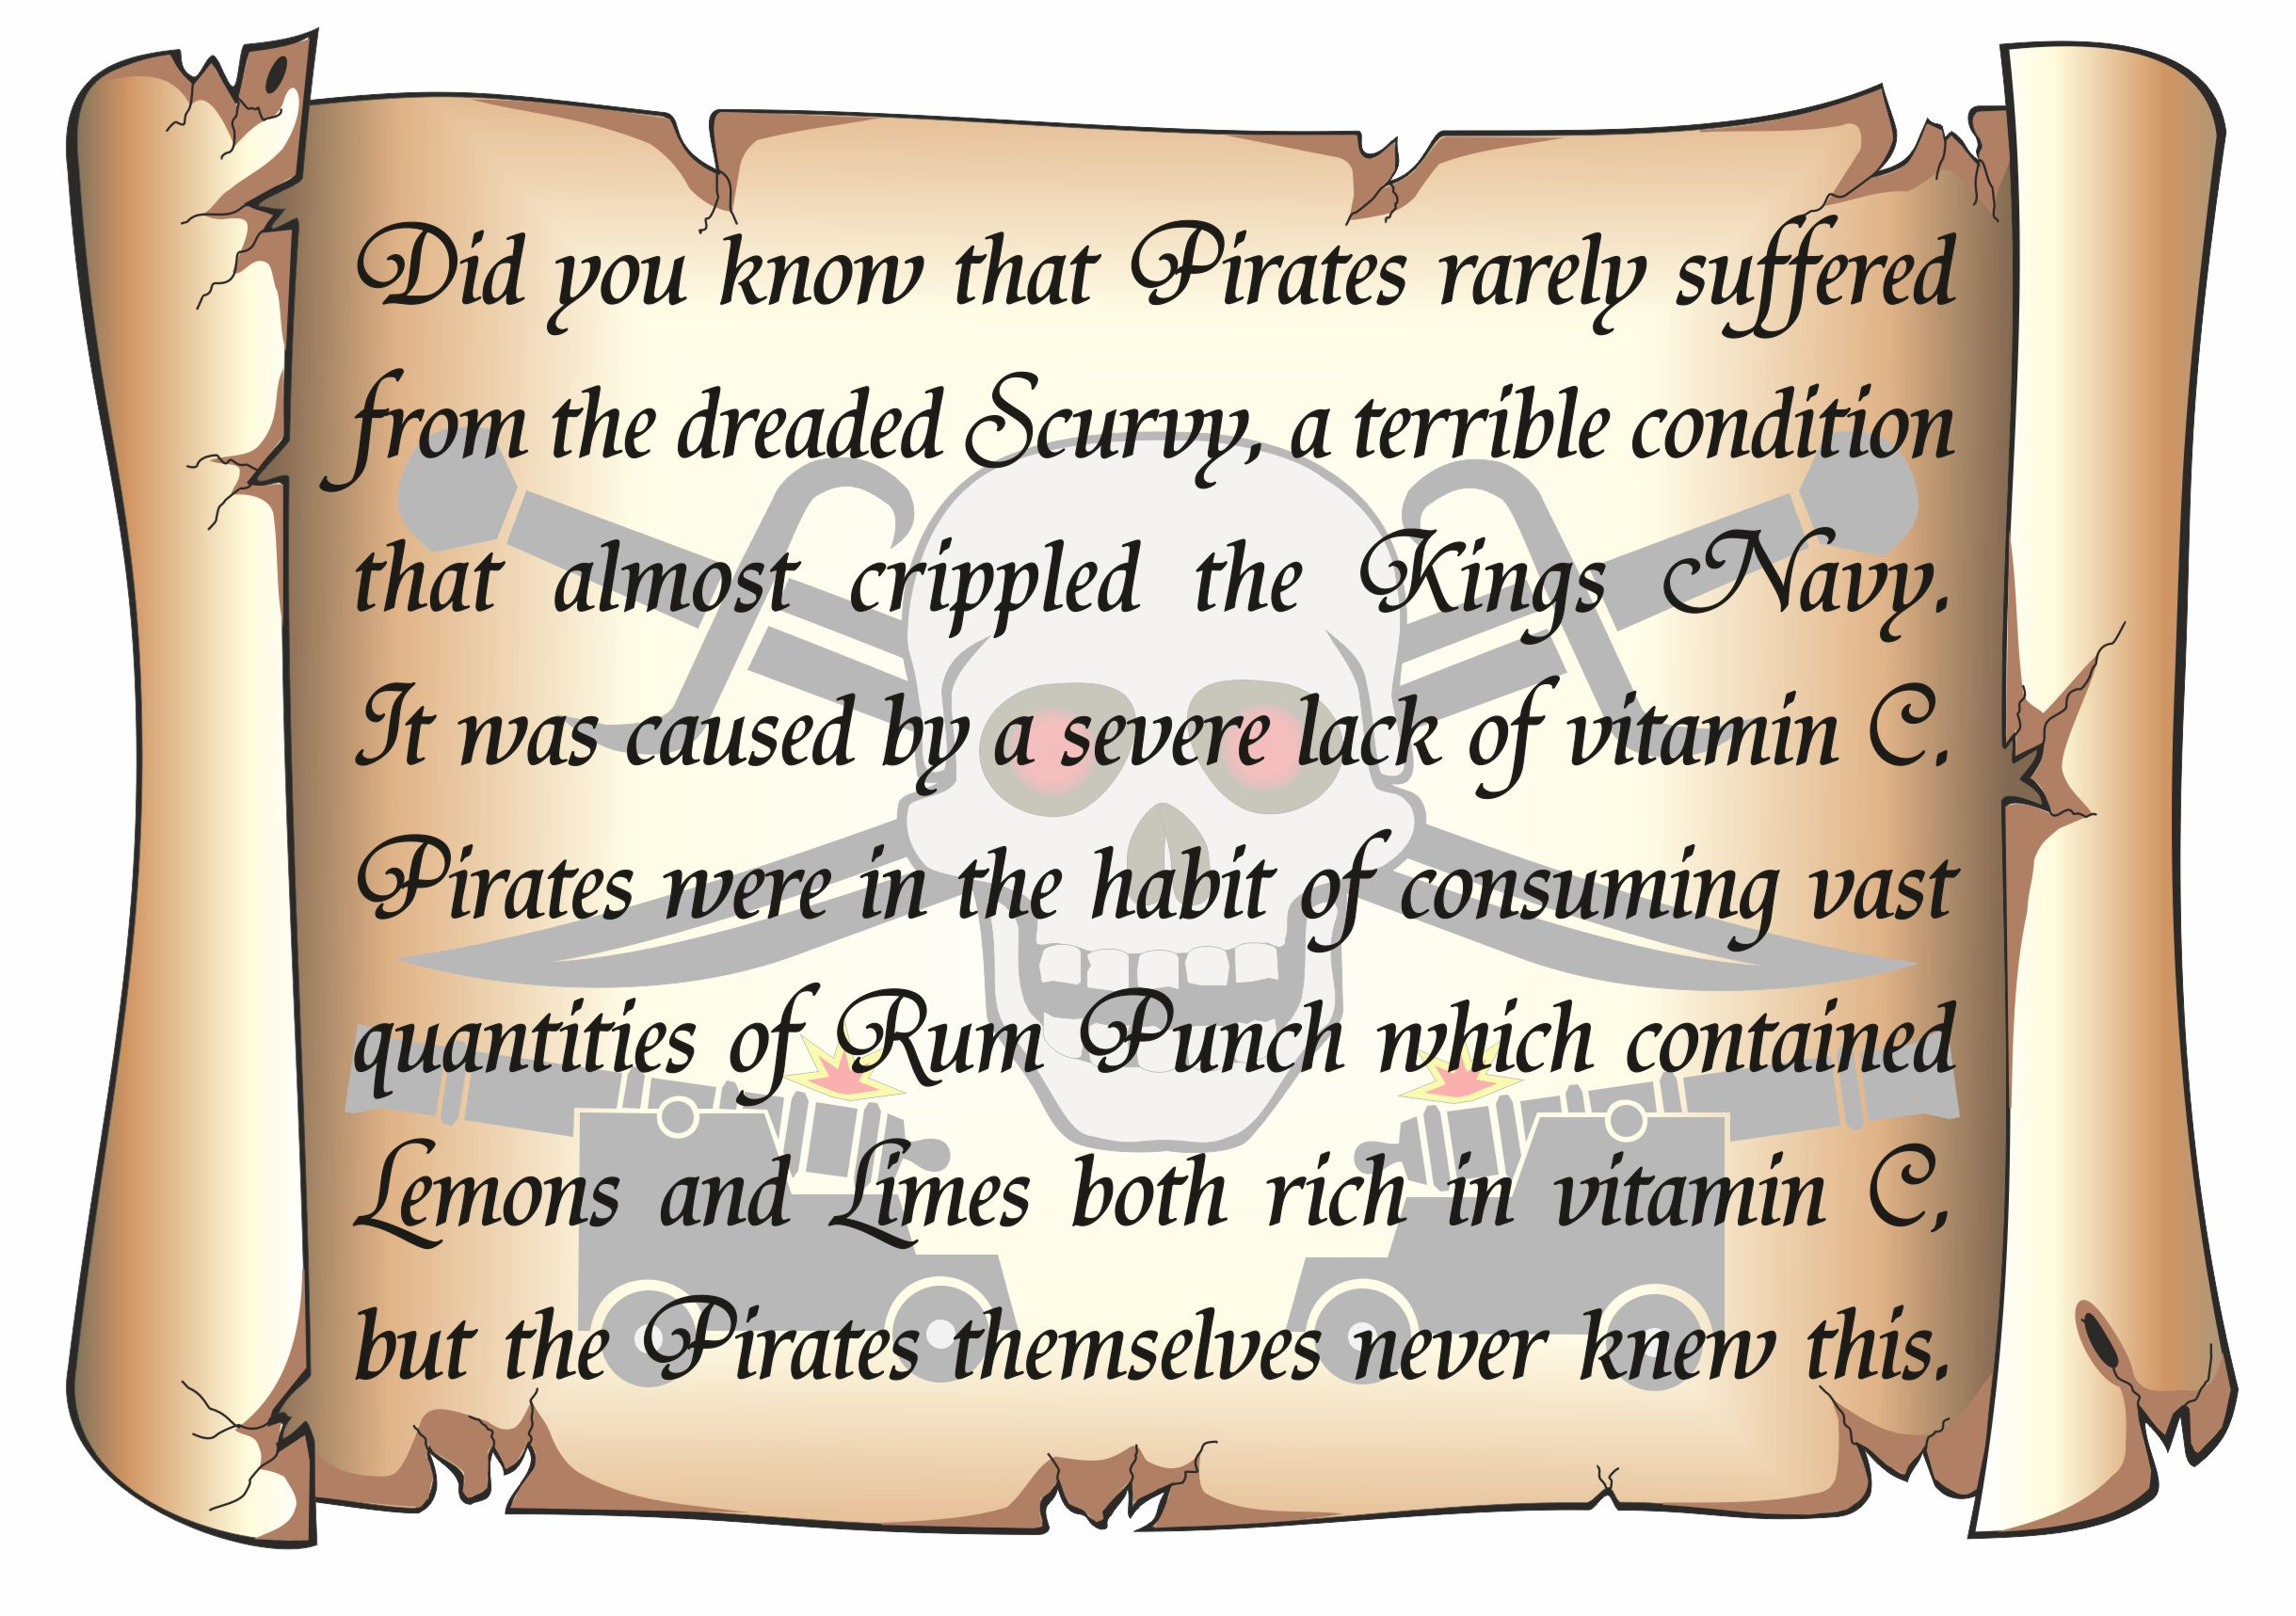 Did you know (Scurvy)